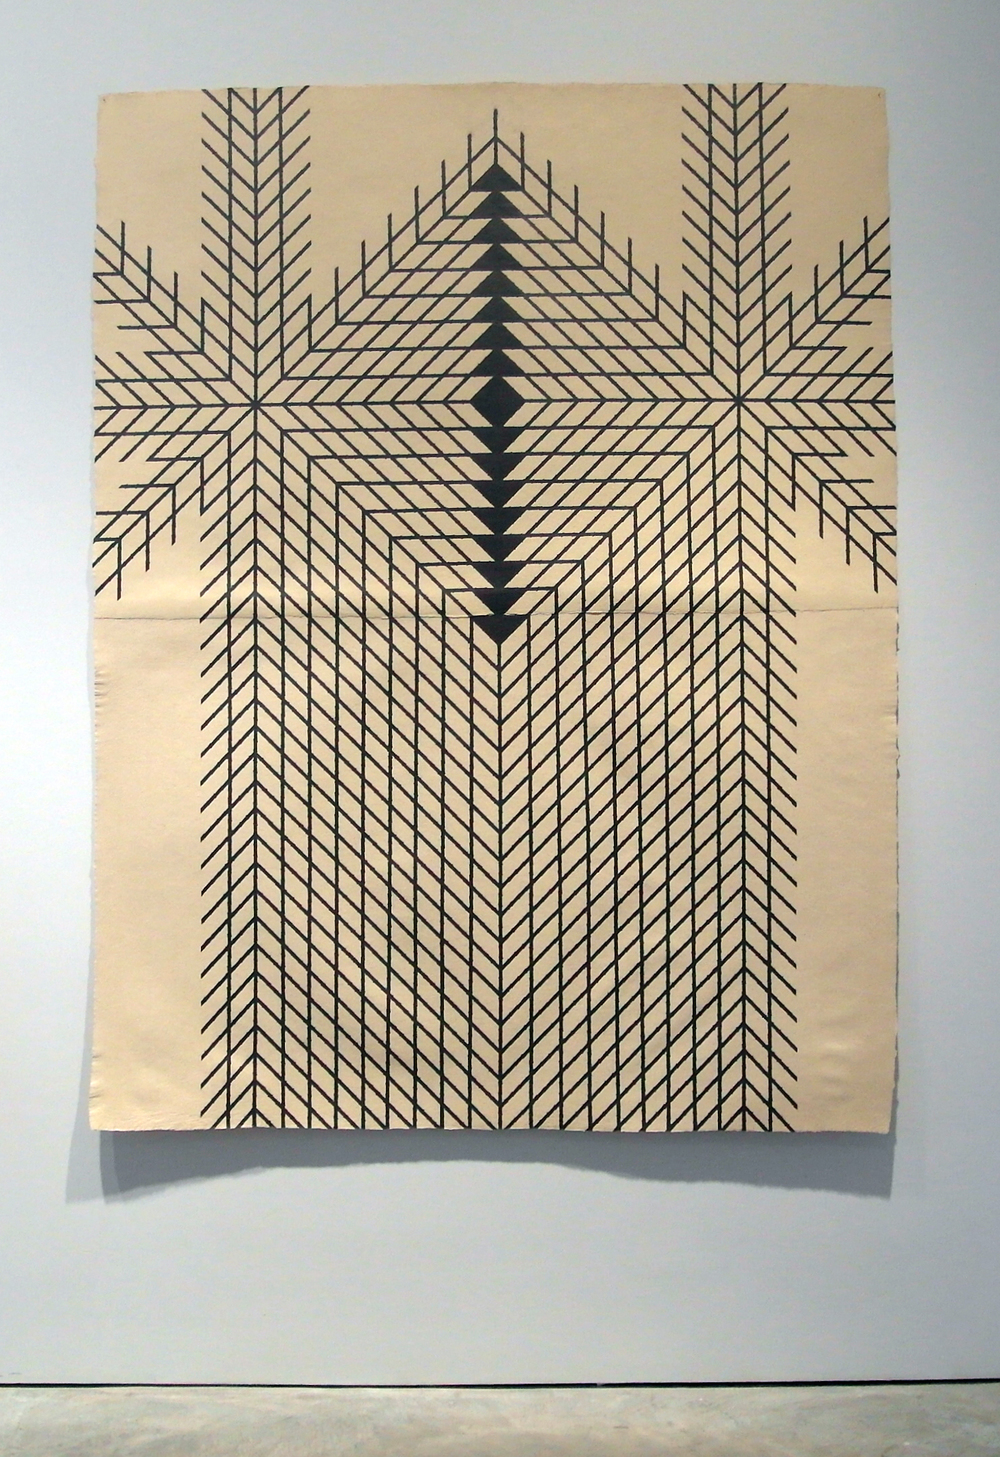 Tower , 2011  Graphite on handmade paper  78 x 60 inches